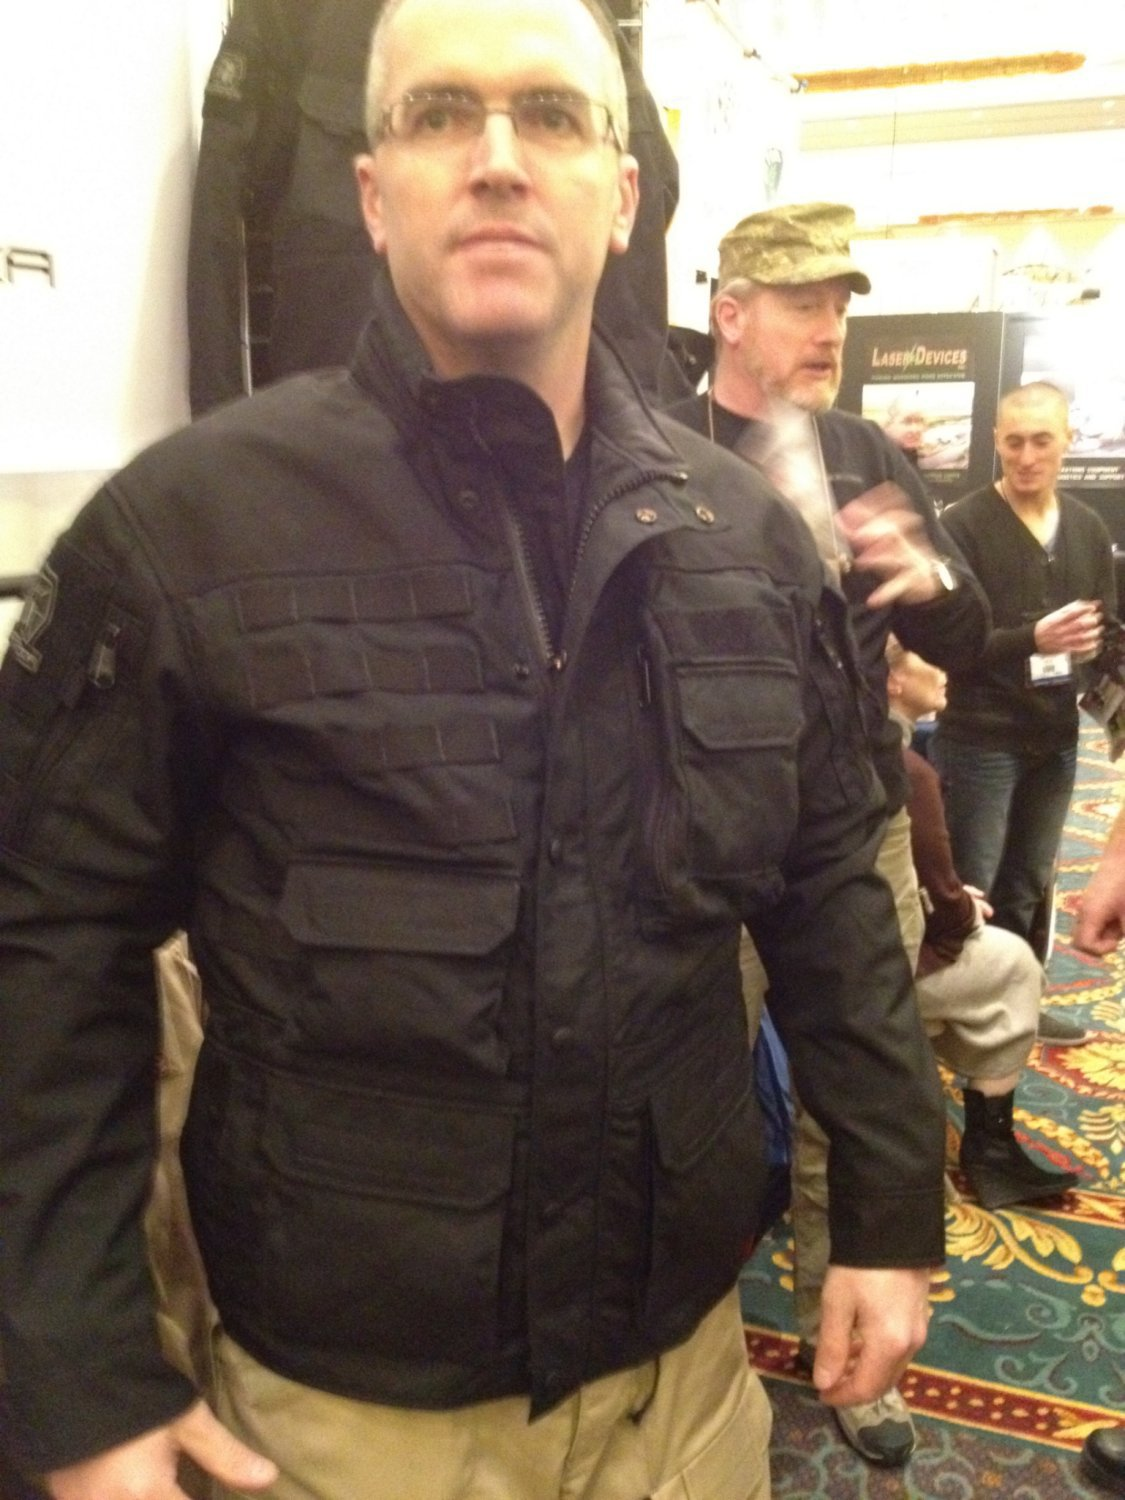 Kitanica Mark V MK5 Tactical Jacket Field Jacket SHOT Show 2012 DefenseReview.com DR 1 Kitanica Mark V (MK5) Tactical Jacket with Textured Poron XRD Padding System for Civilian Tactical Shooters: The Latest Kitanica Advanced Tactical Apparel/Clothing Product (Video!)